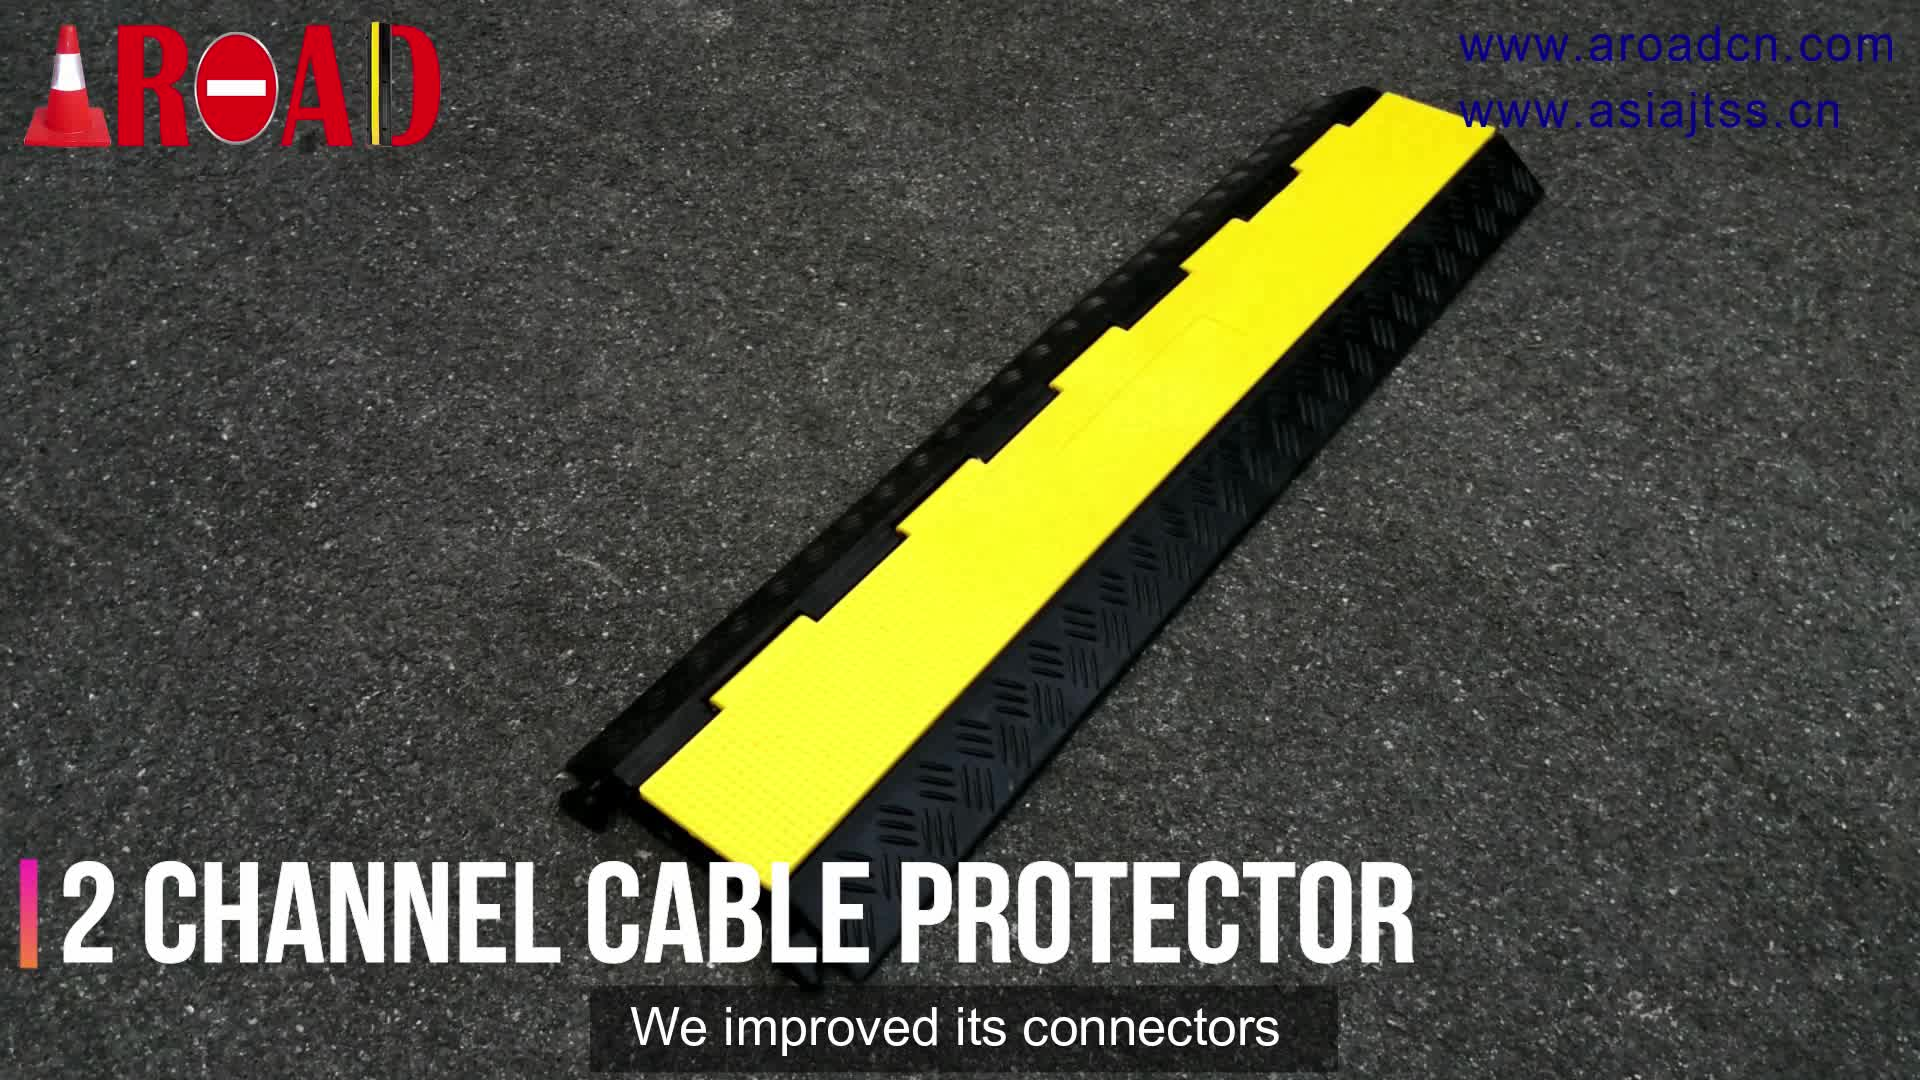 TUV test  yellow pvc lid high quality 2 channel stage use rubber cable tray manufacturer cable protectors